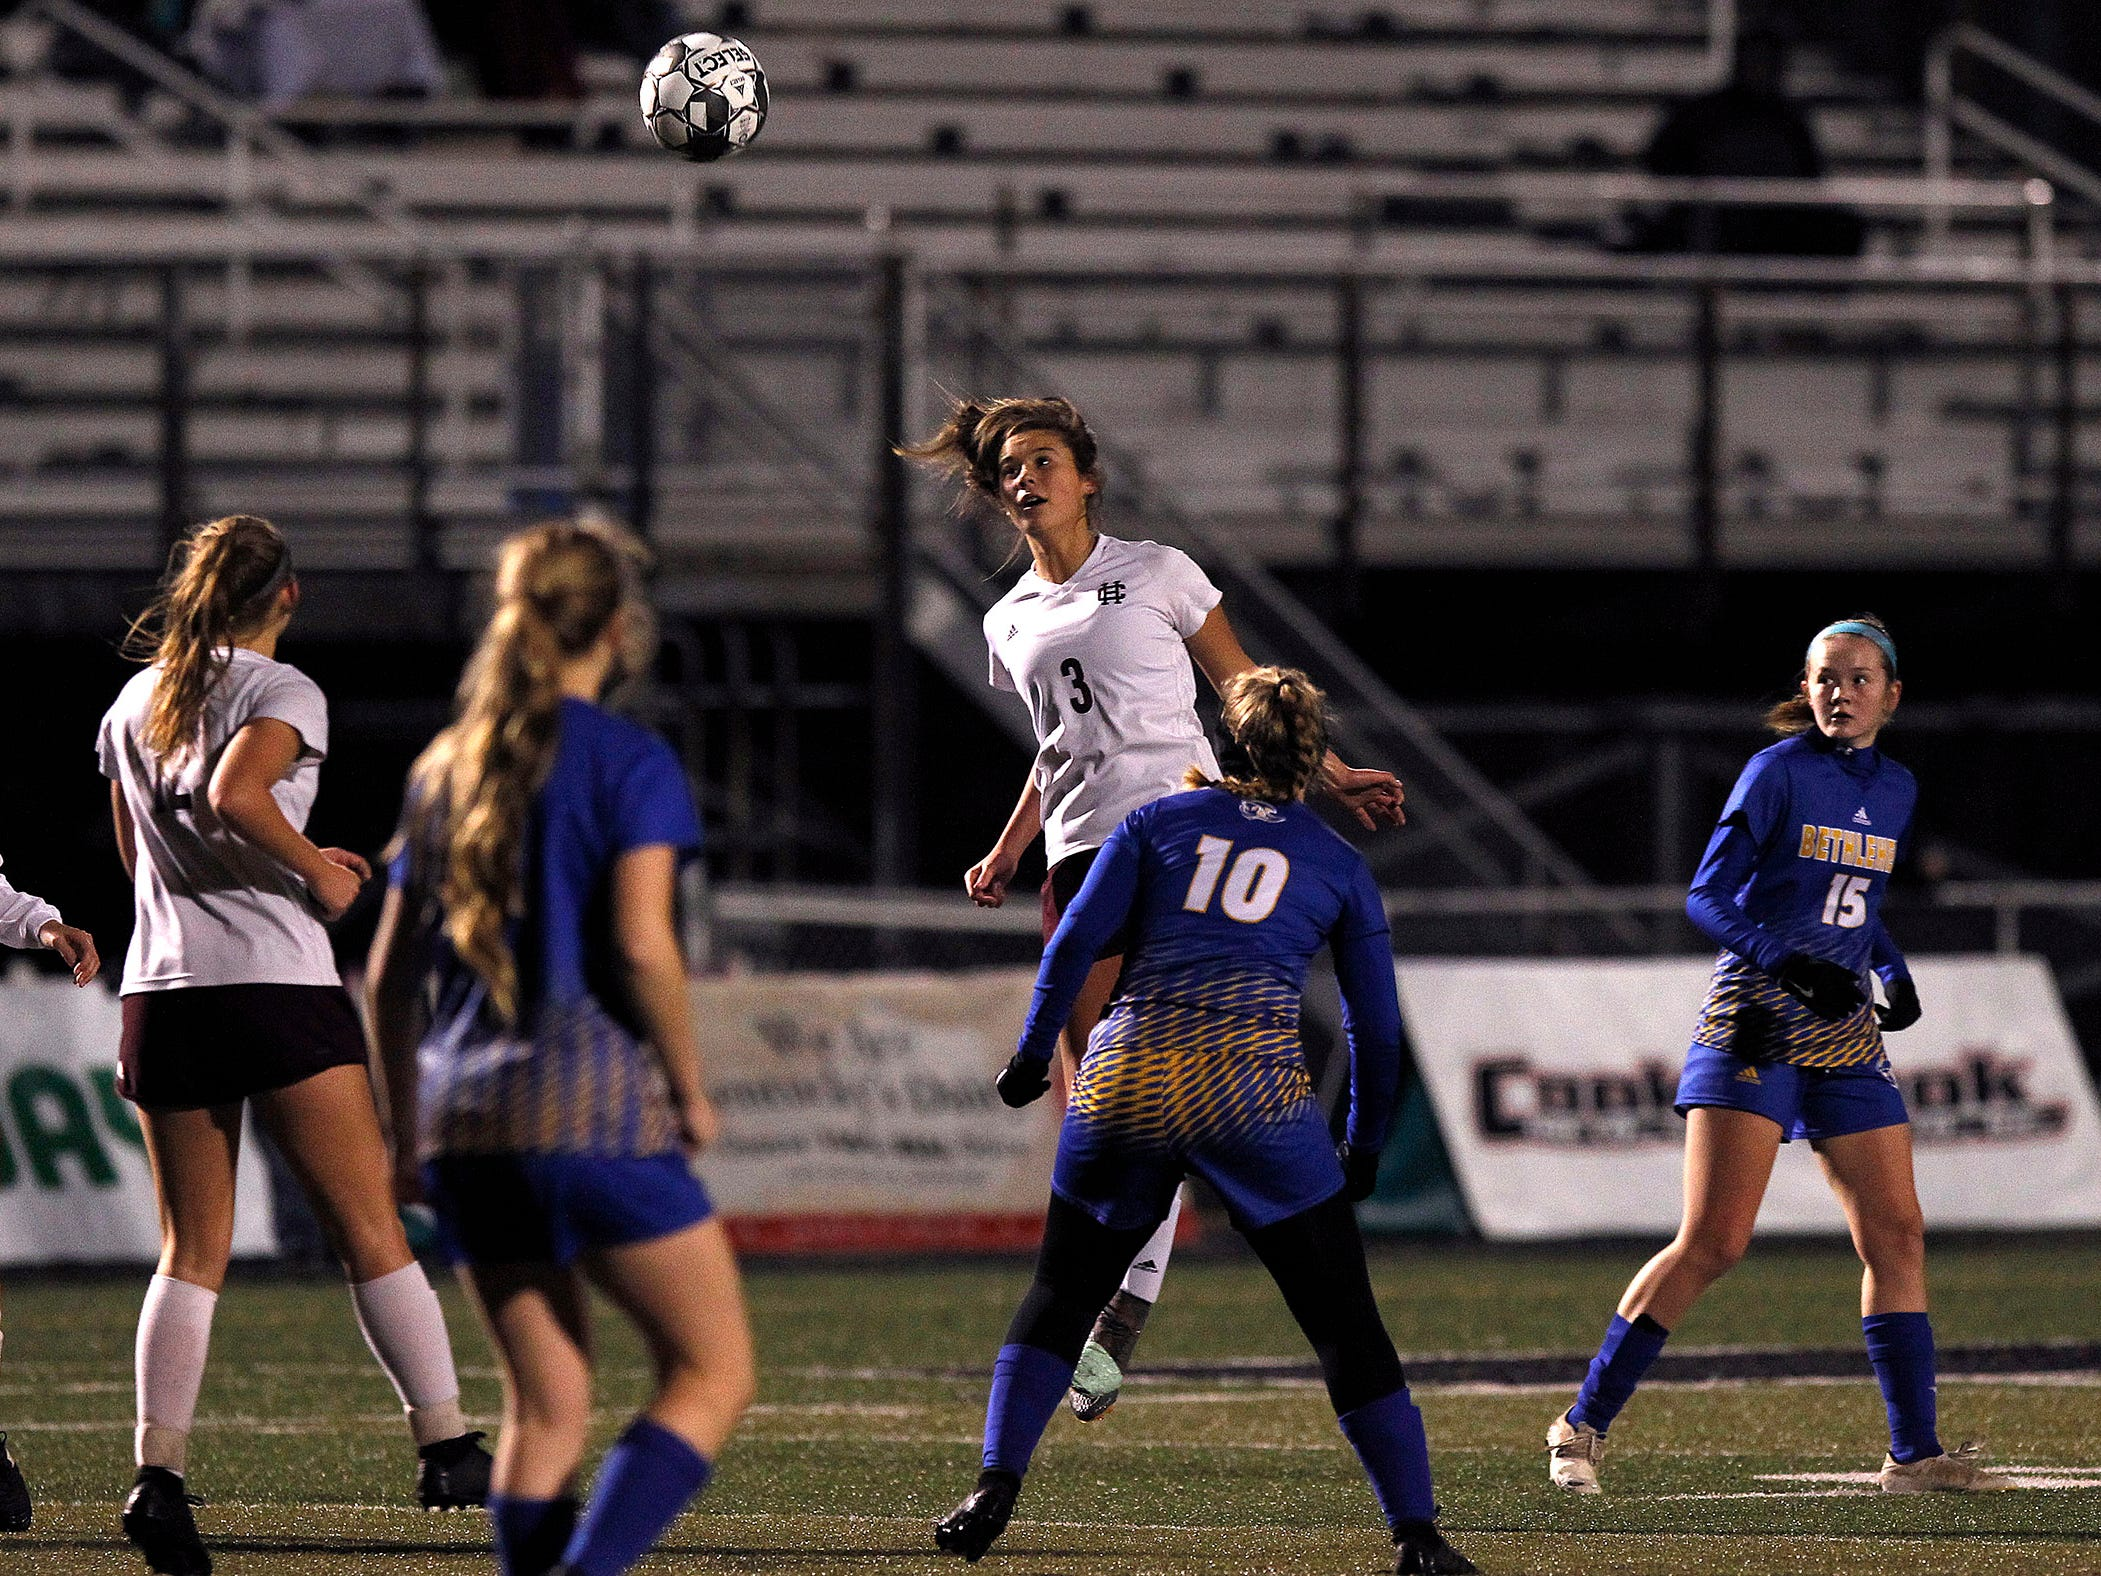 Henderson County's Maggie Sauer header gainst Bethlehem in the KHSAA state quarterfinals at Paul Laurence Dunbar in Lexington, Ky., Saturday night.